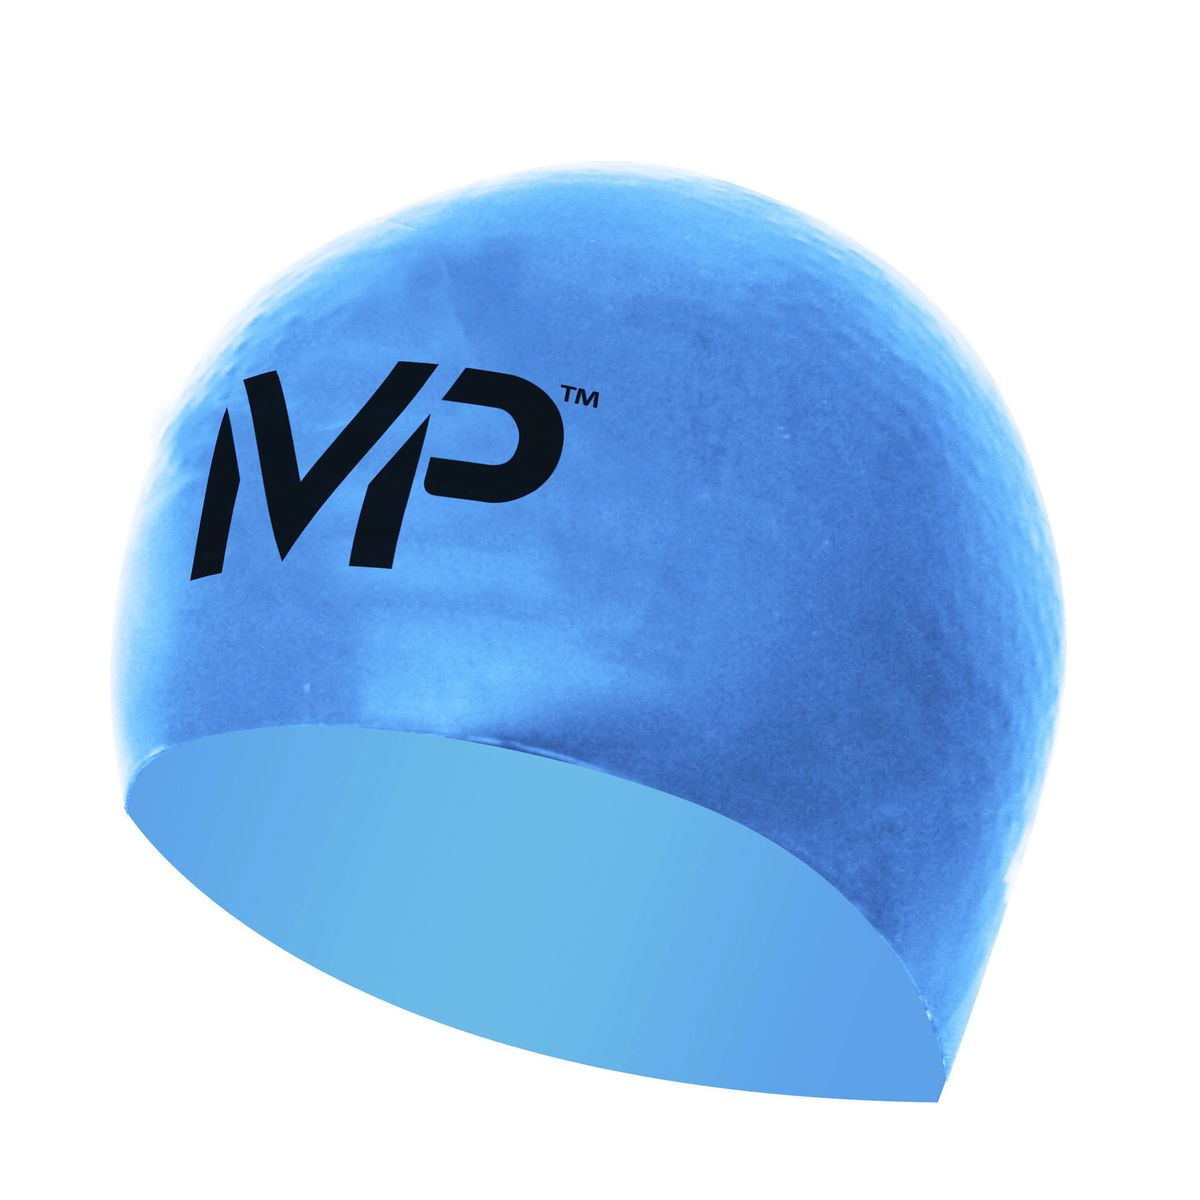 MP Michael Phelps 3D Dome Race Cap | Headwear